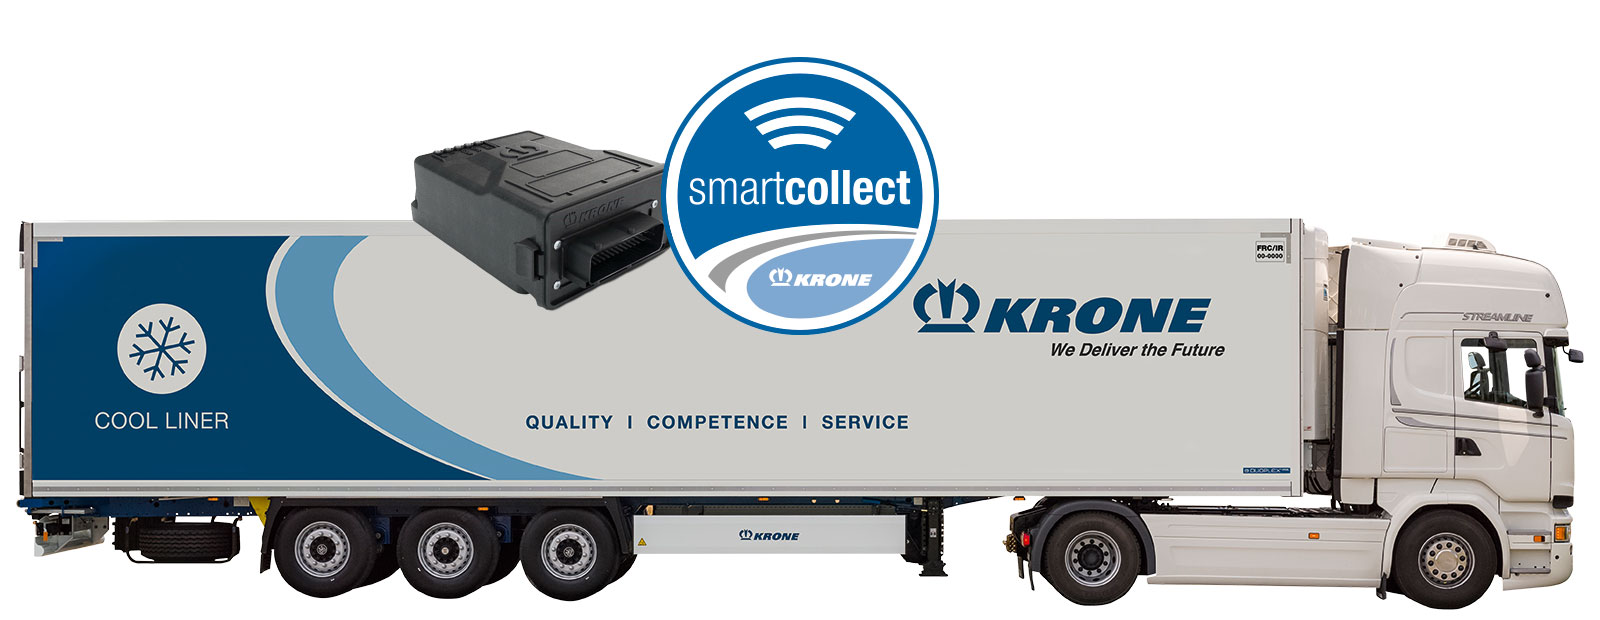 Krone Telematics Smart Collect